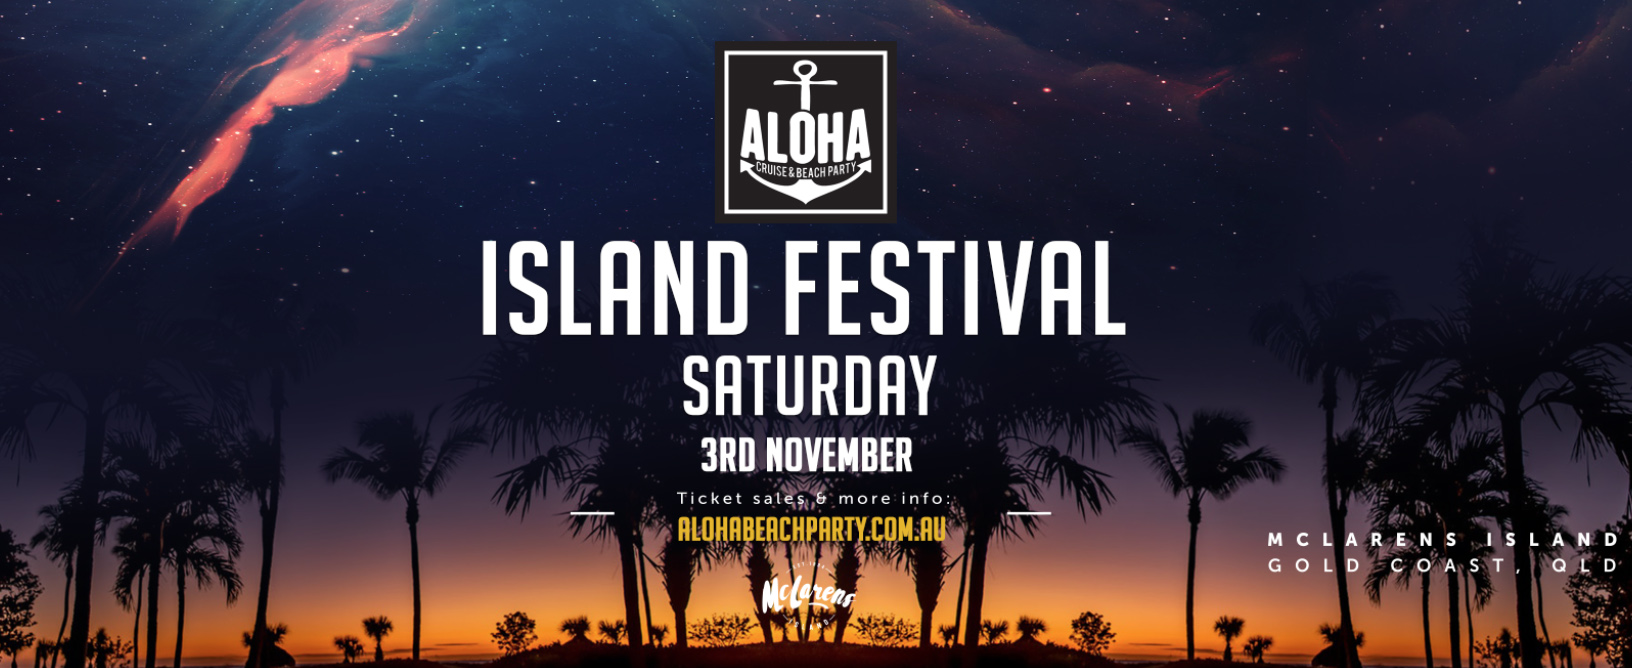 Tickets for Aloha HI LIFE Island Festival in Main Beach from Ticketbooth